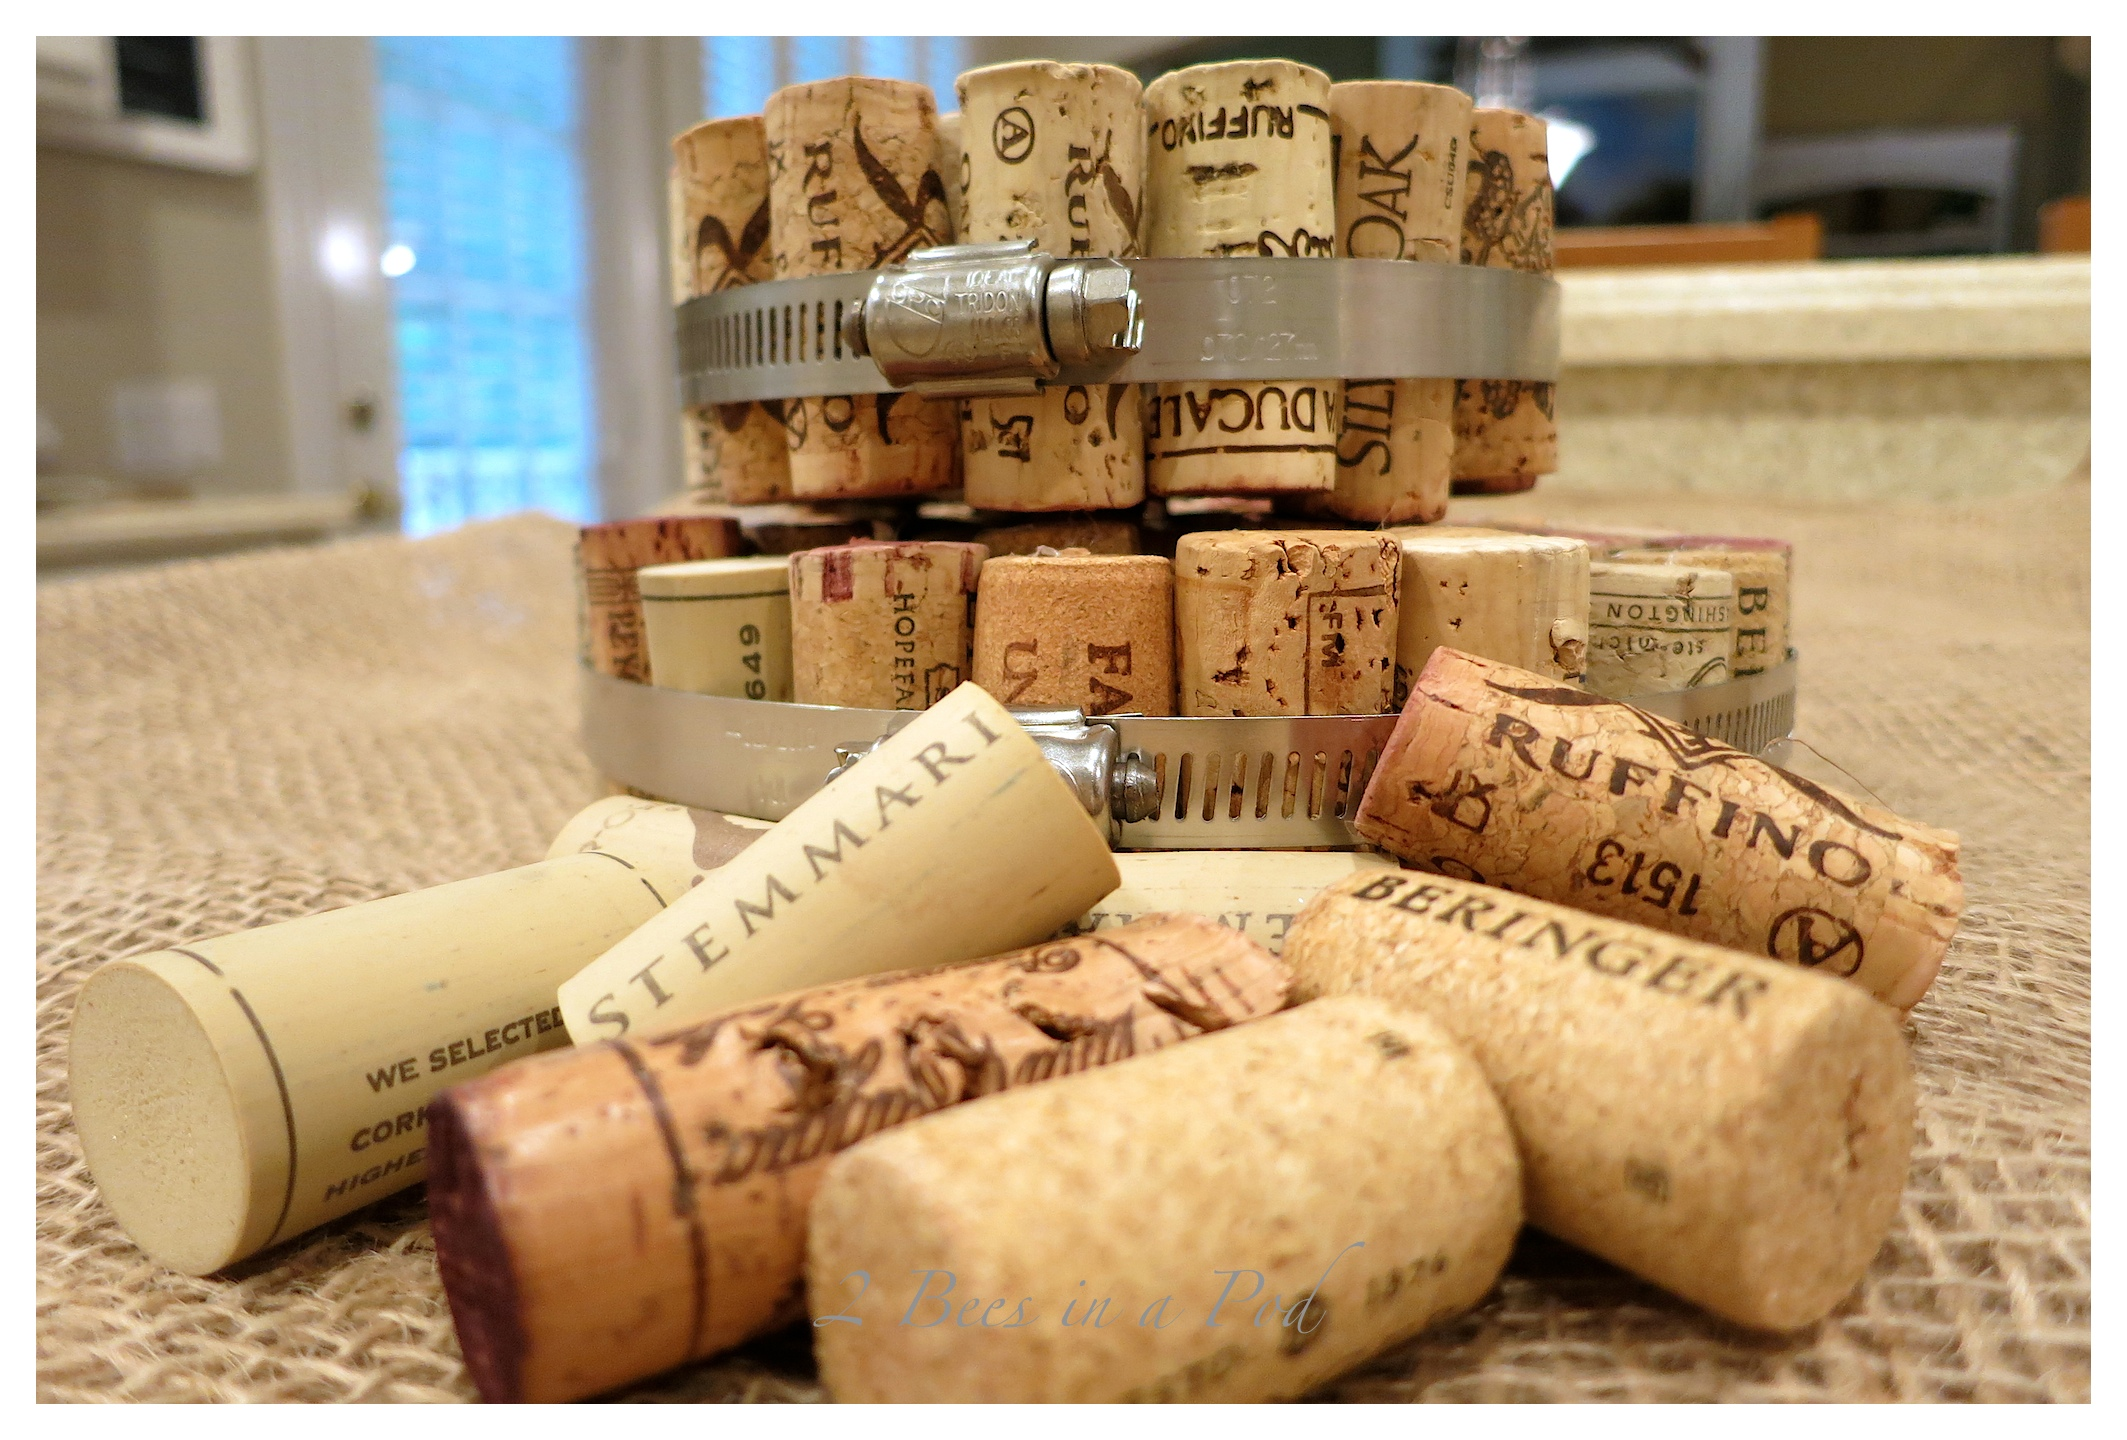 DIY Wine Cork Hot Pads - very easy and inexpensive project. All you need is wine corks and metal hardware clamps and a bit of hot glue.